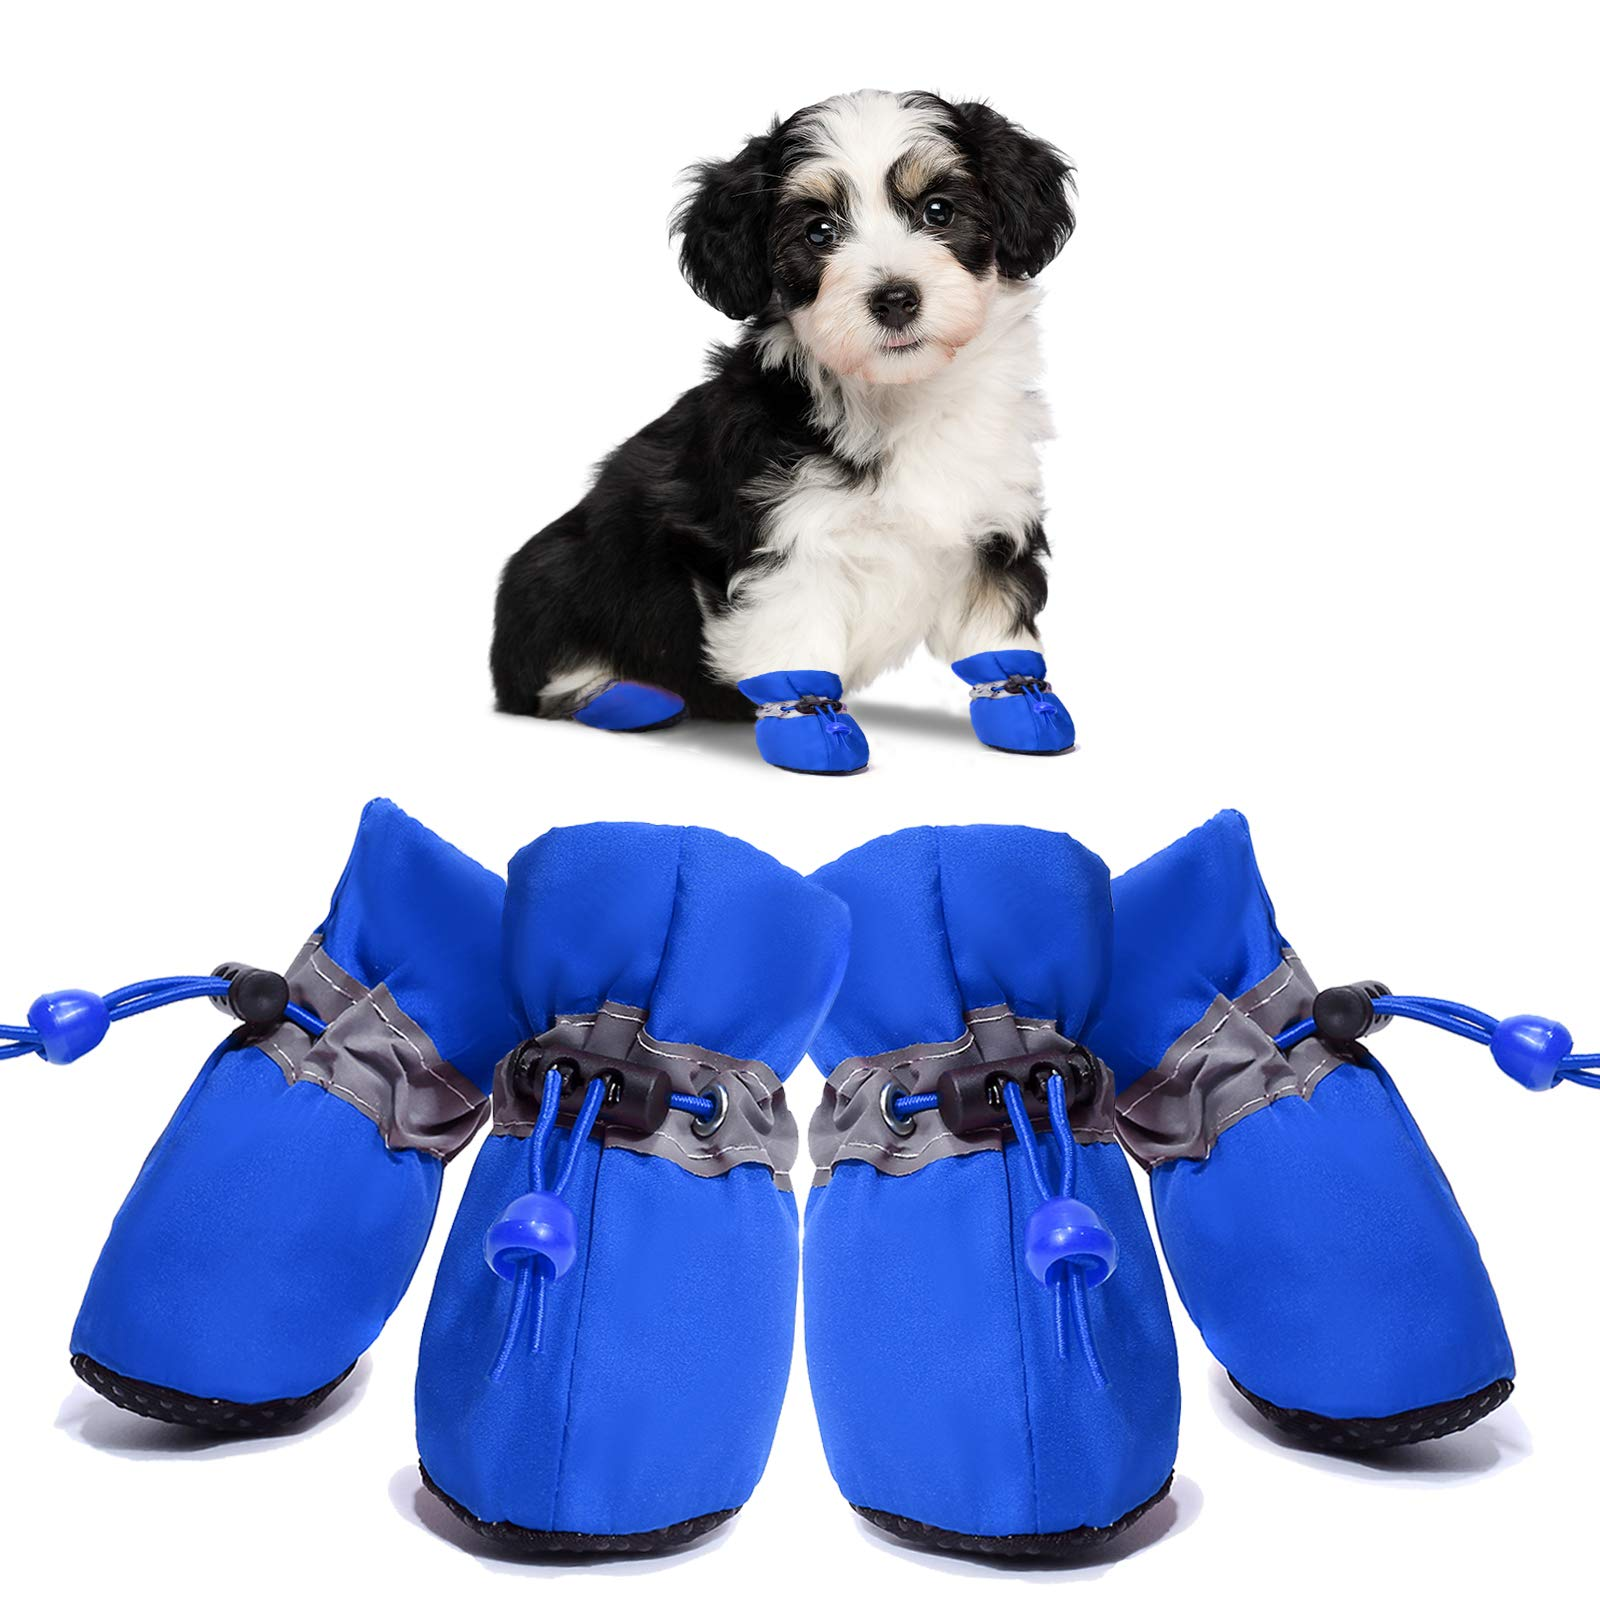 Dog Boots Anti-Slip Shoes Pet Paw Protector for Small Medium Dogs and Puppies 4PCS